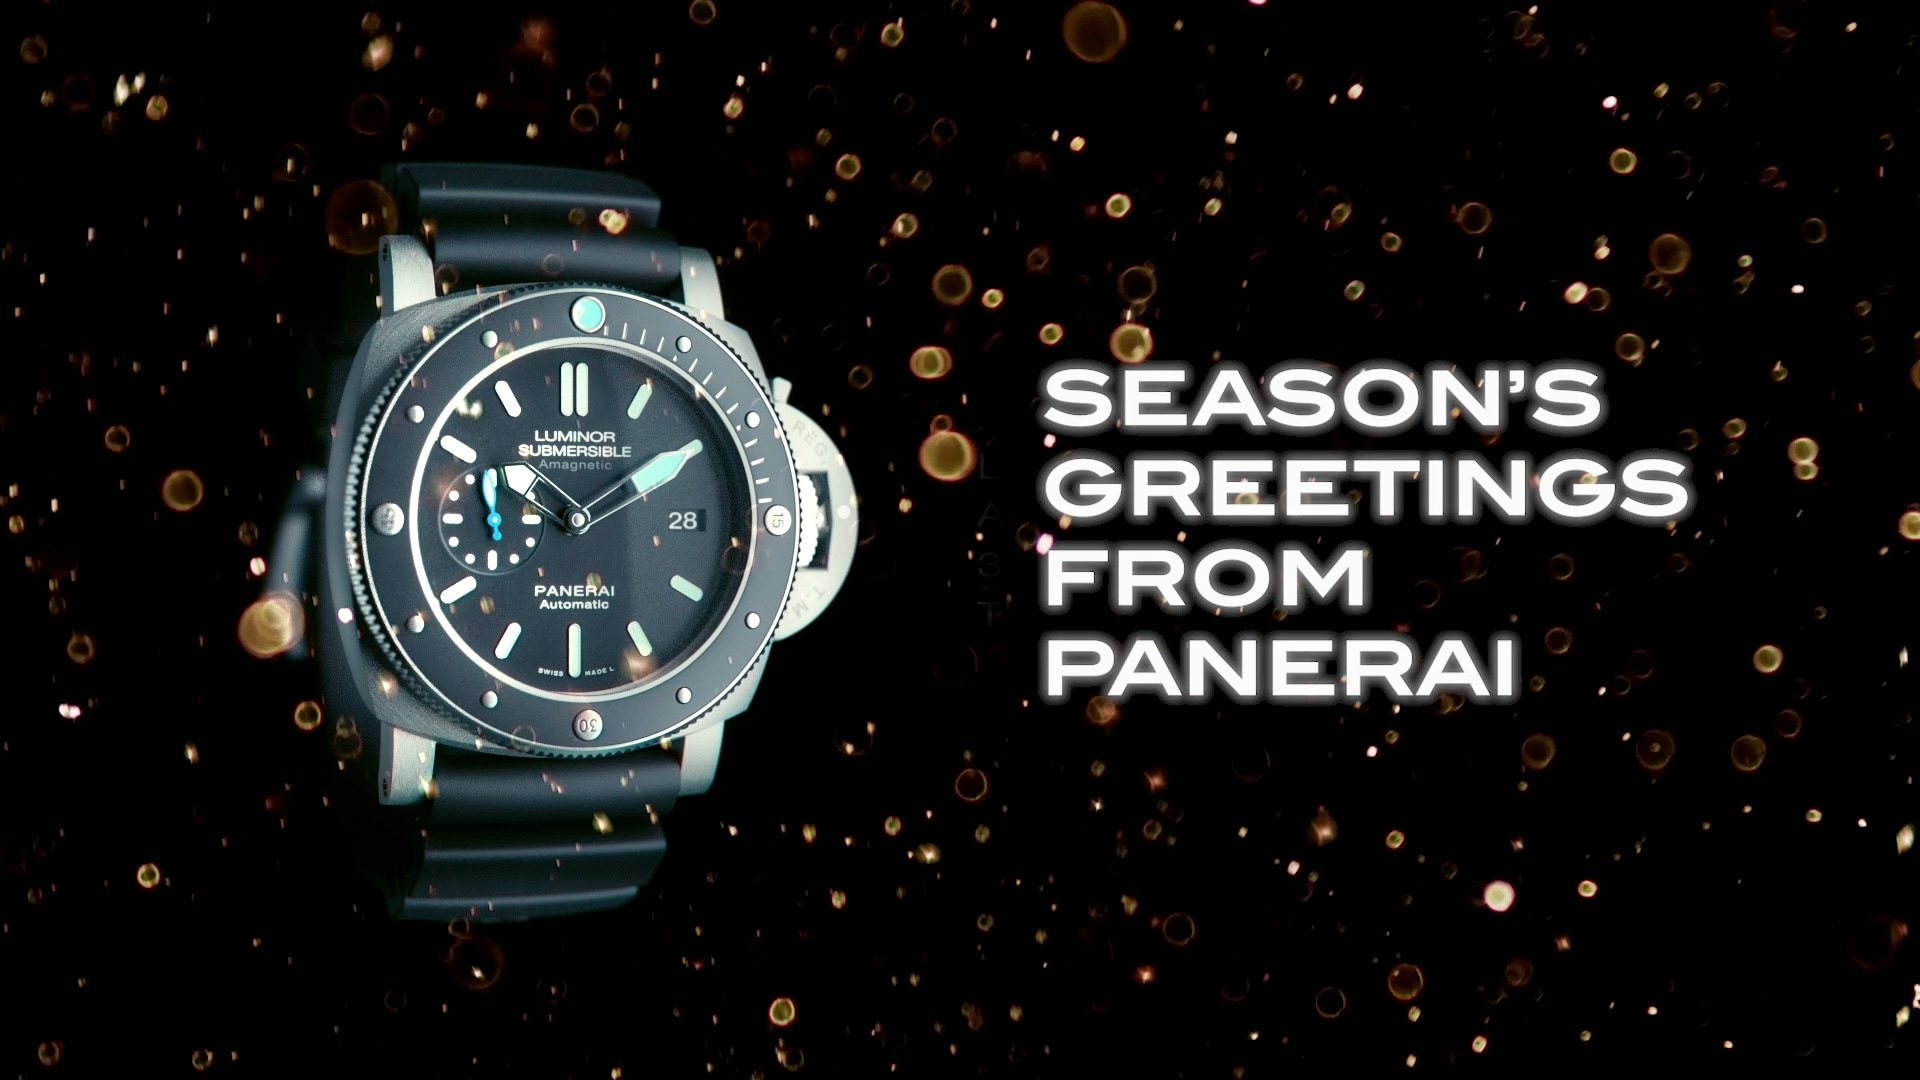 Season's greetings from Panerai